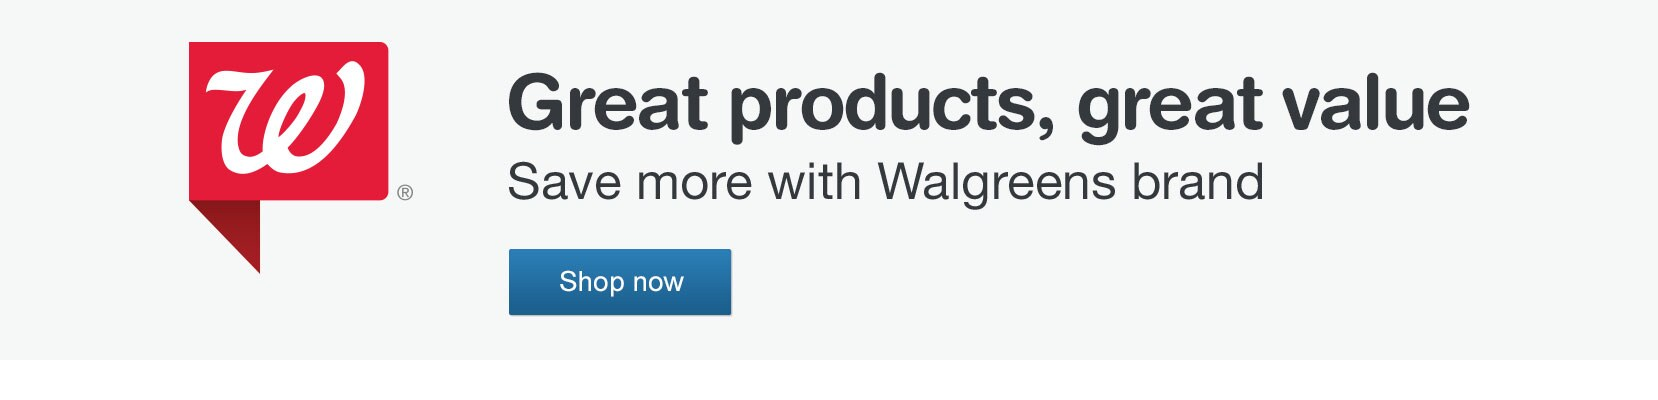 Great products, great value. Save more with Walgreens brand. Shop now.